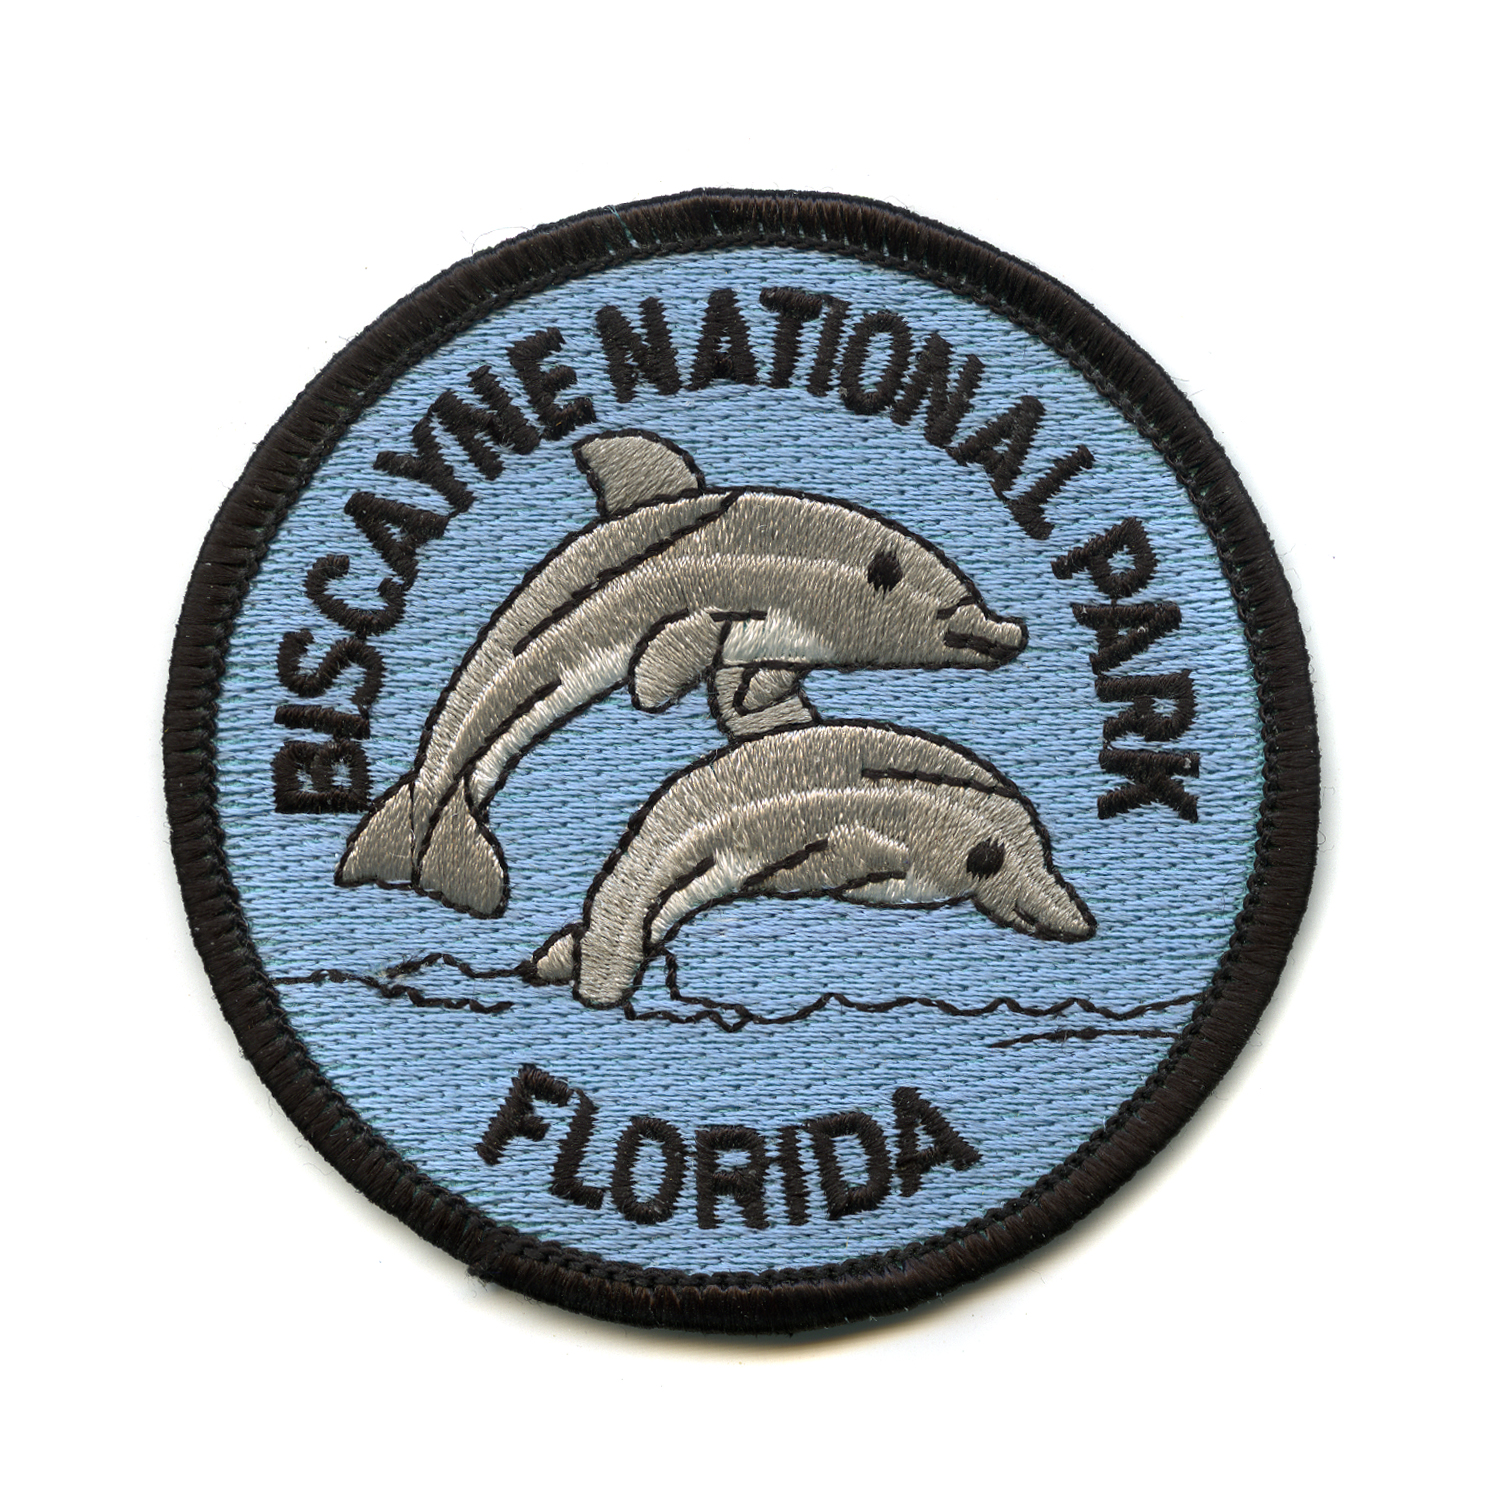 nps_patch_project_biscayne_national_park_patch_1.jpg